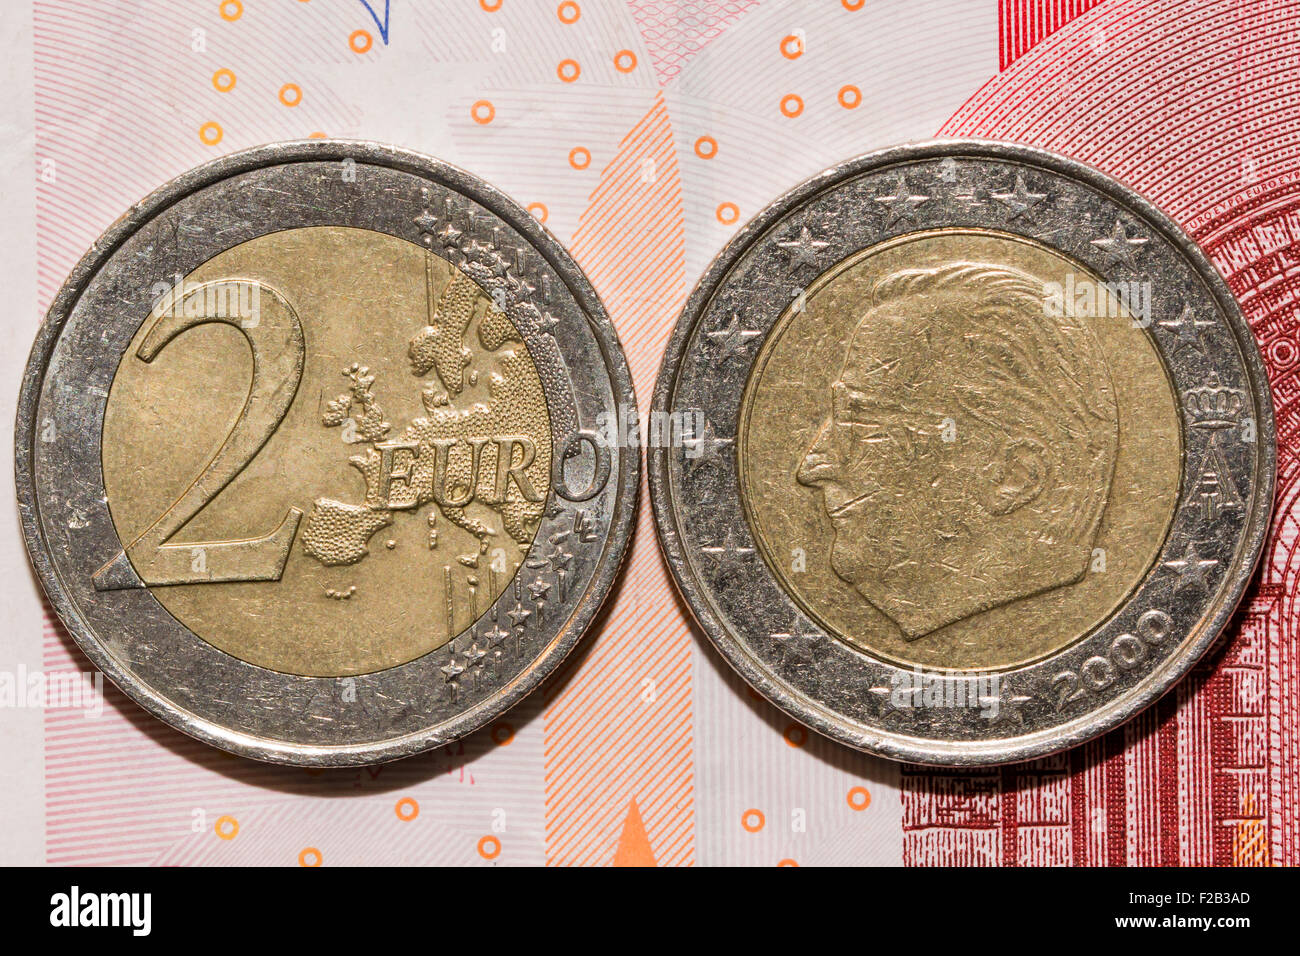 Heads or tails you decide, on euro bank paper - Stock Image